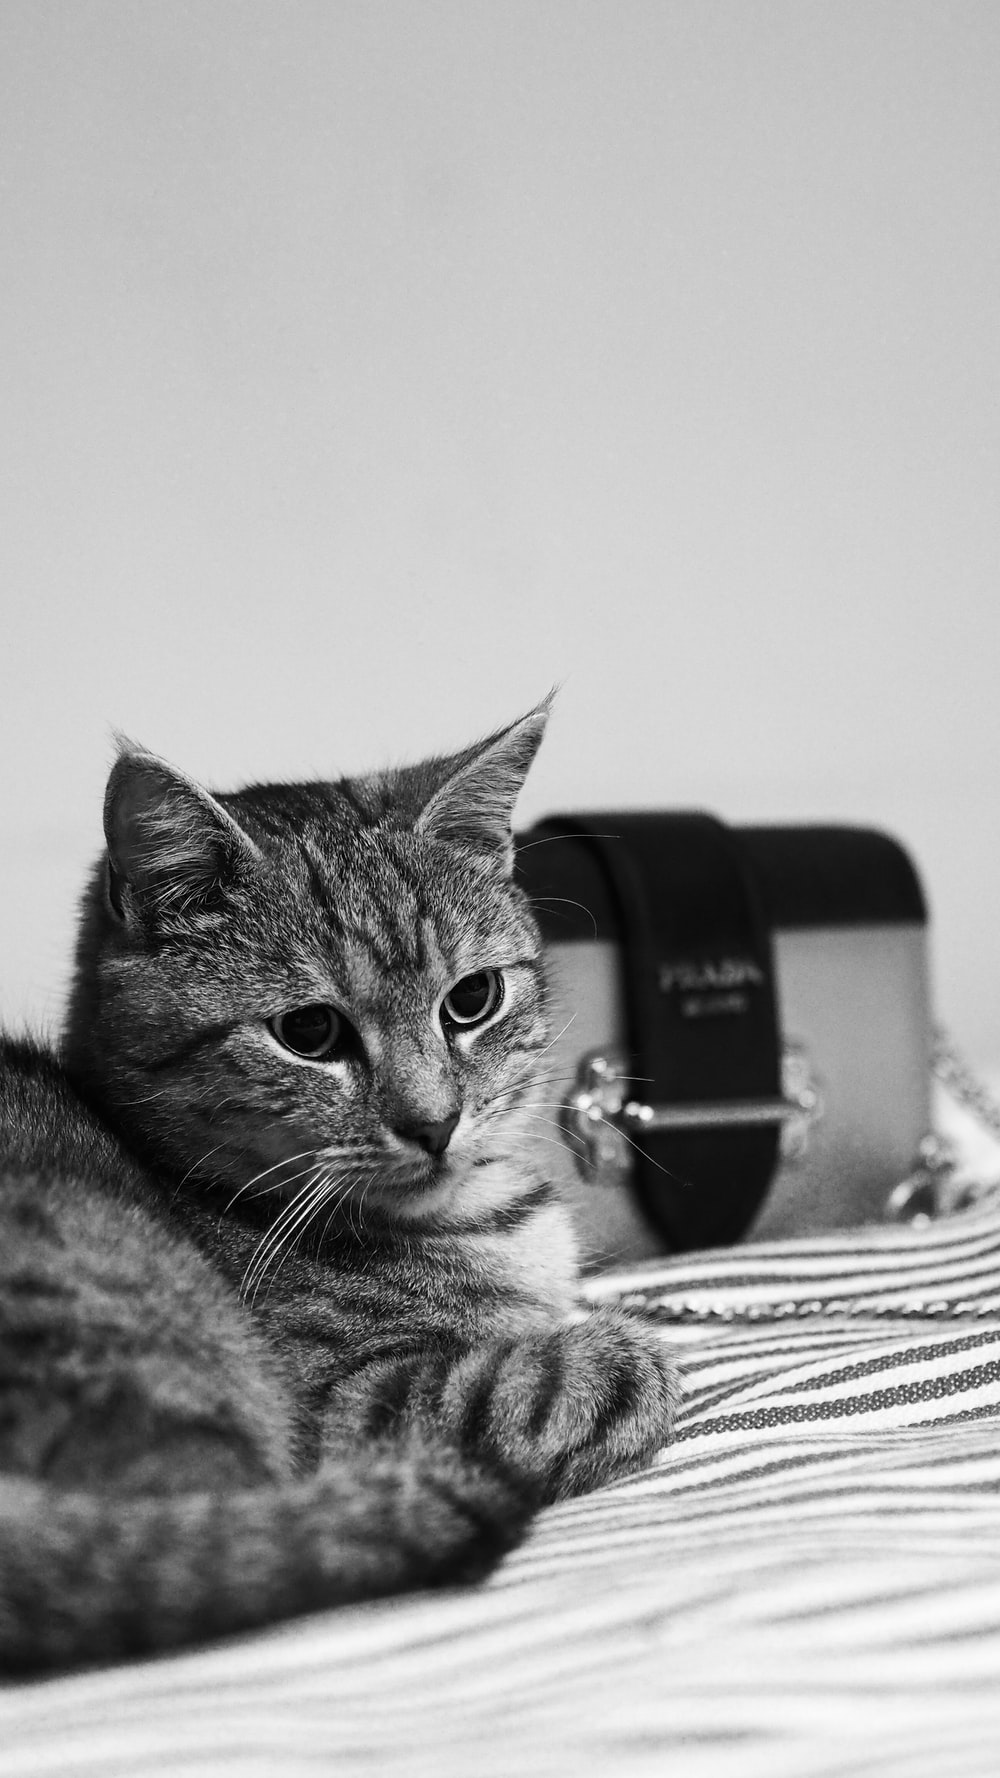 silver tabby cat lying on white and black textile